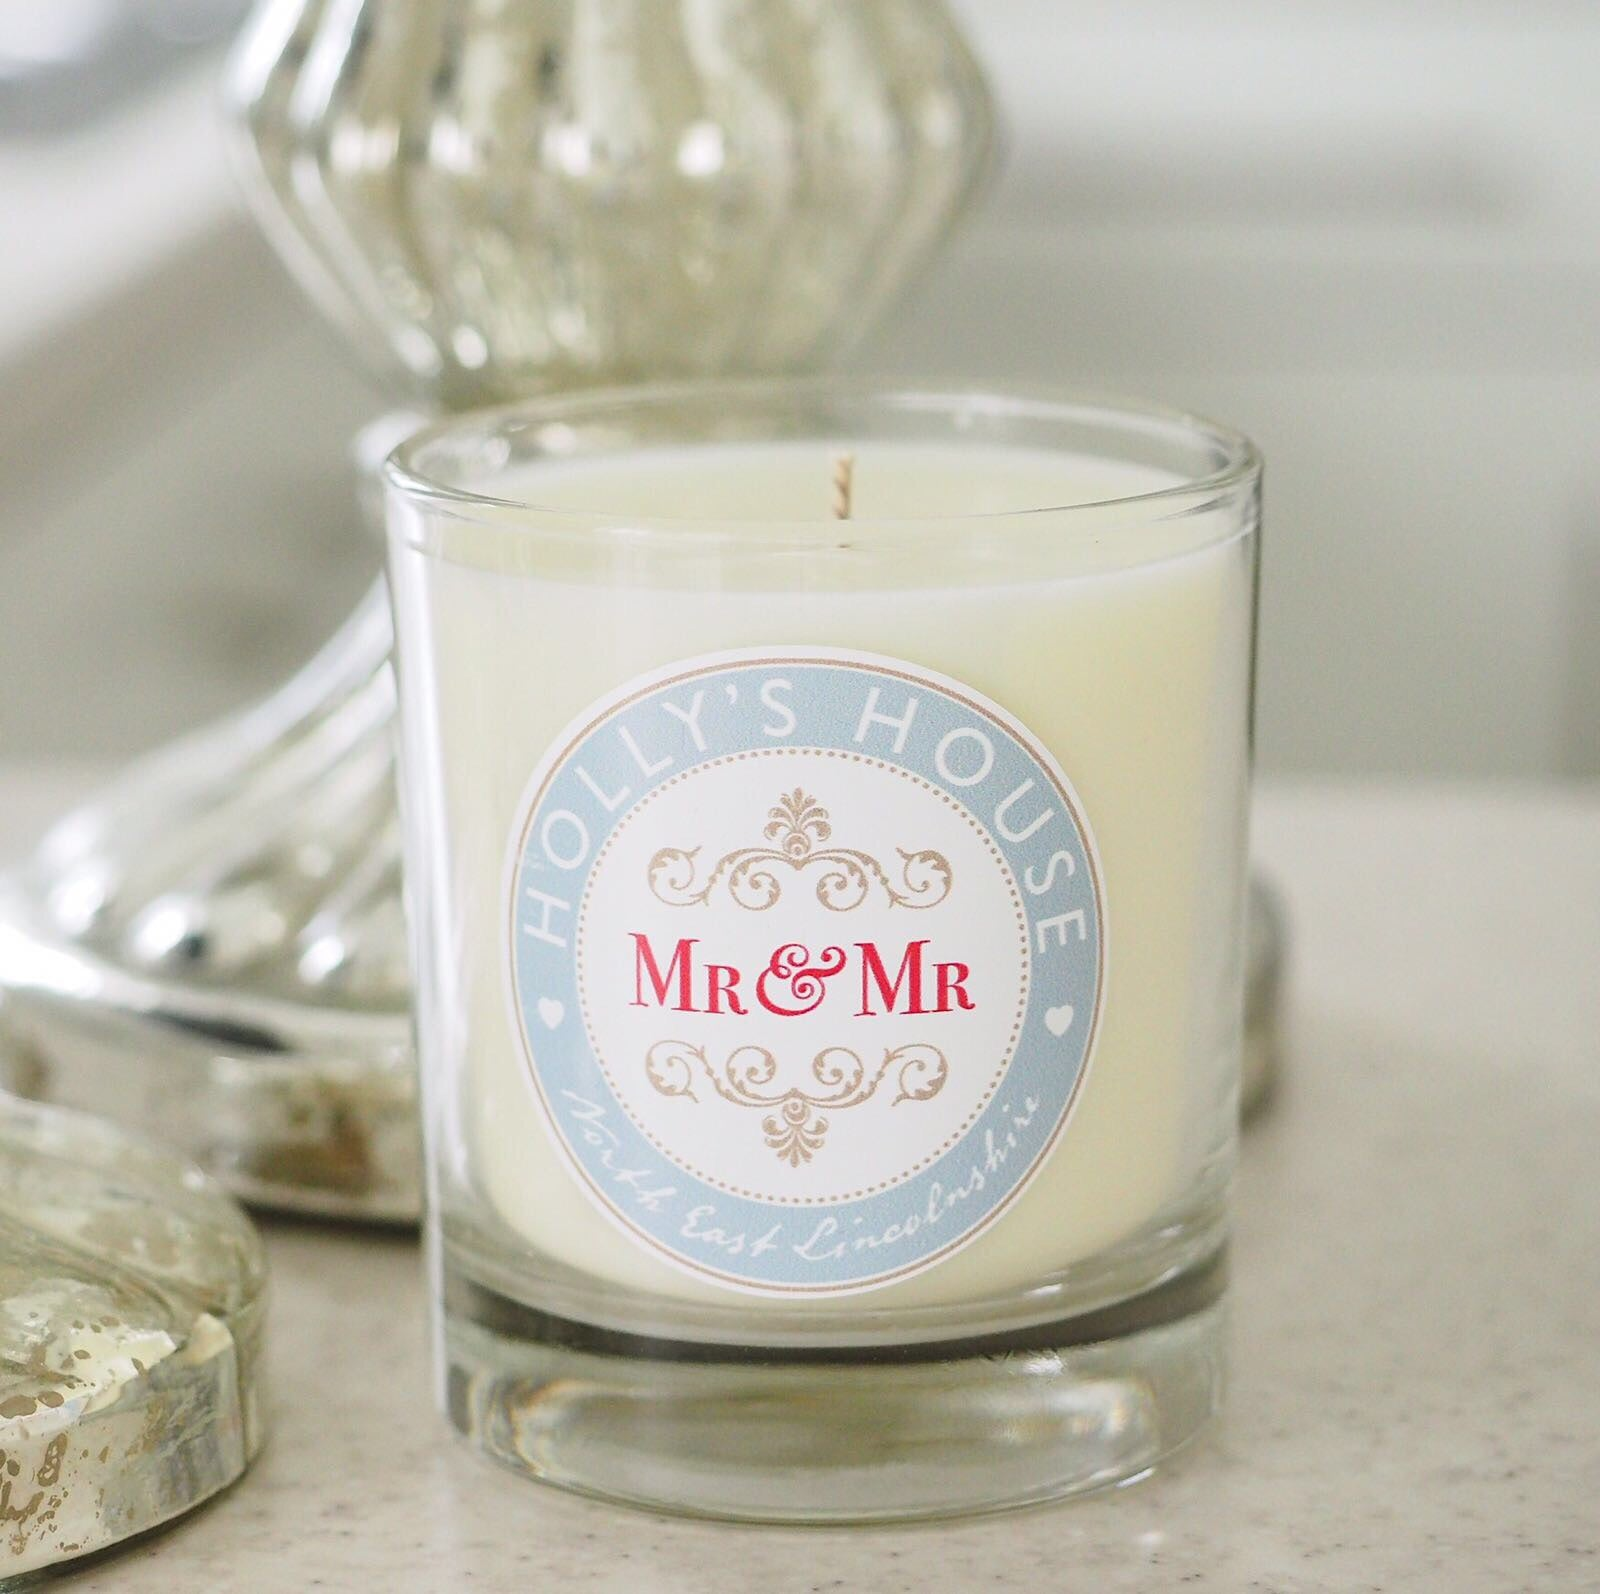 Mr & Mr Scented Candle – Holly\'s House UK